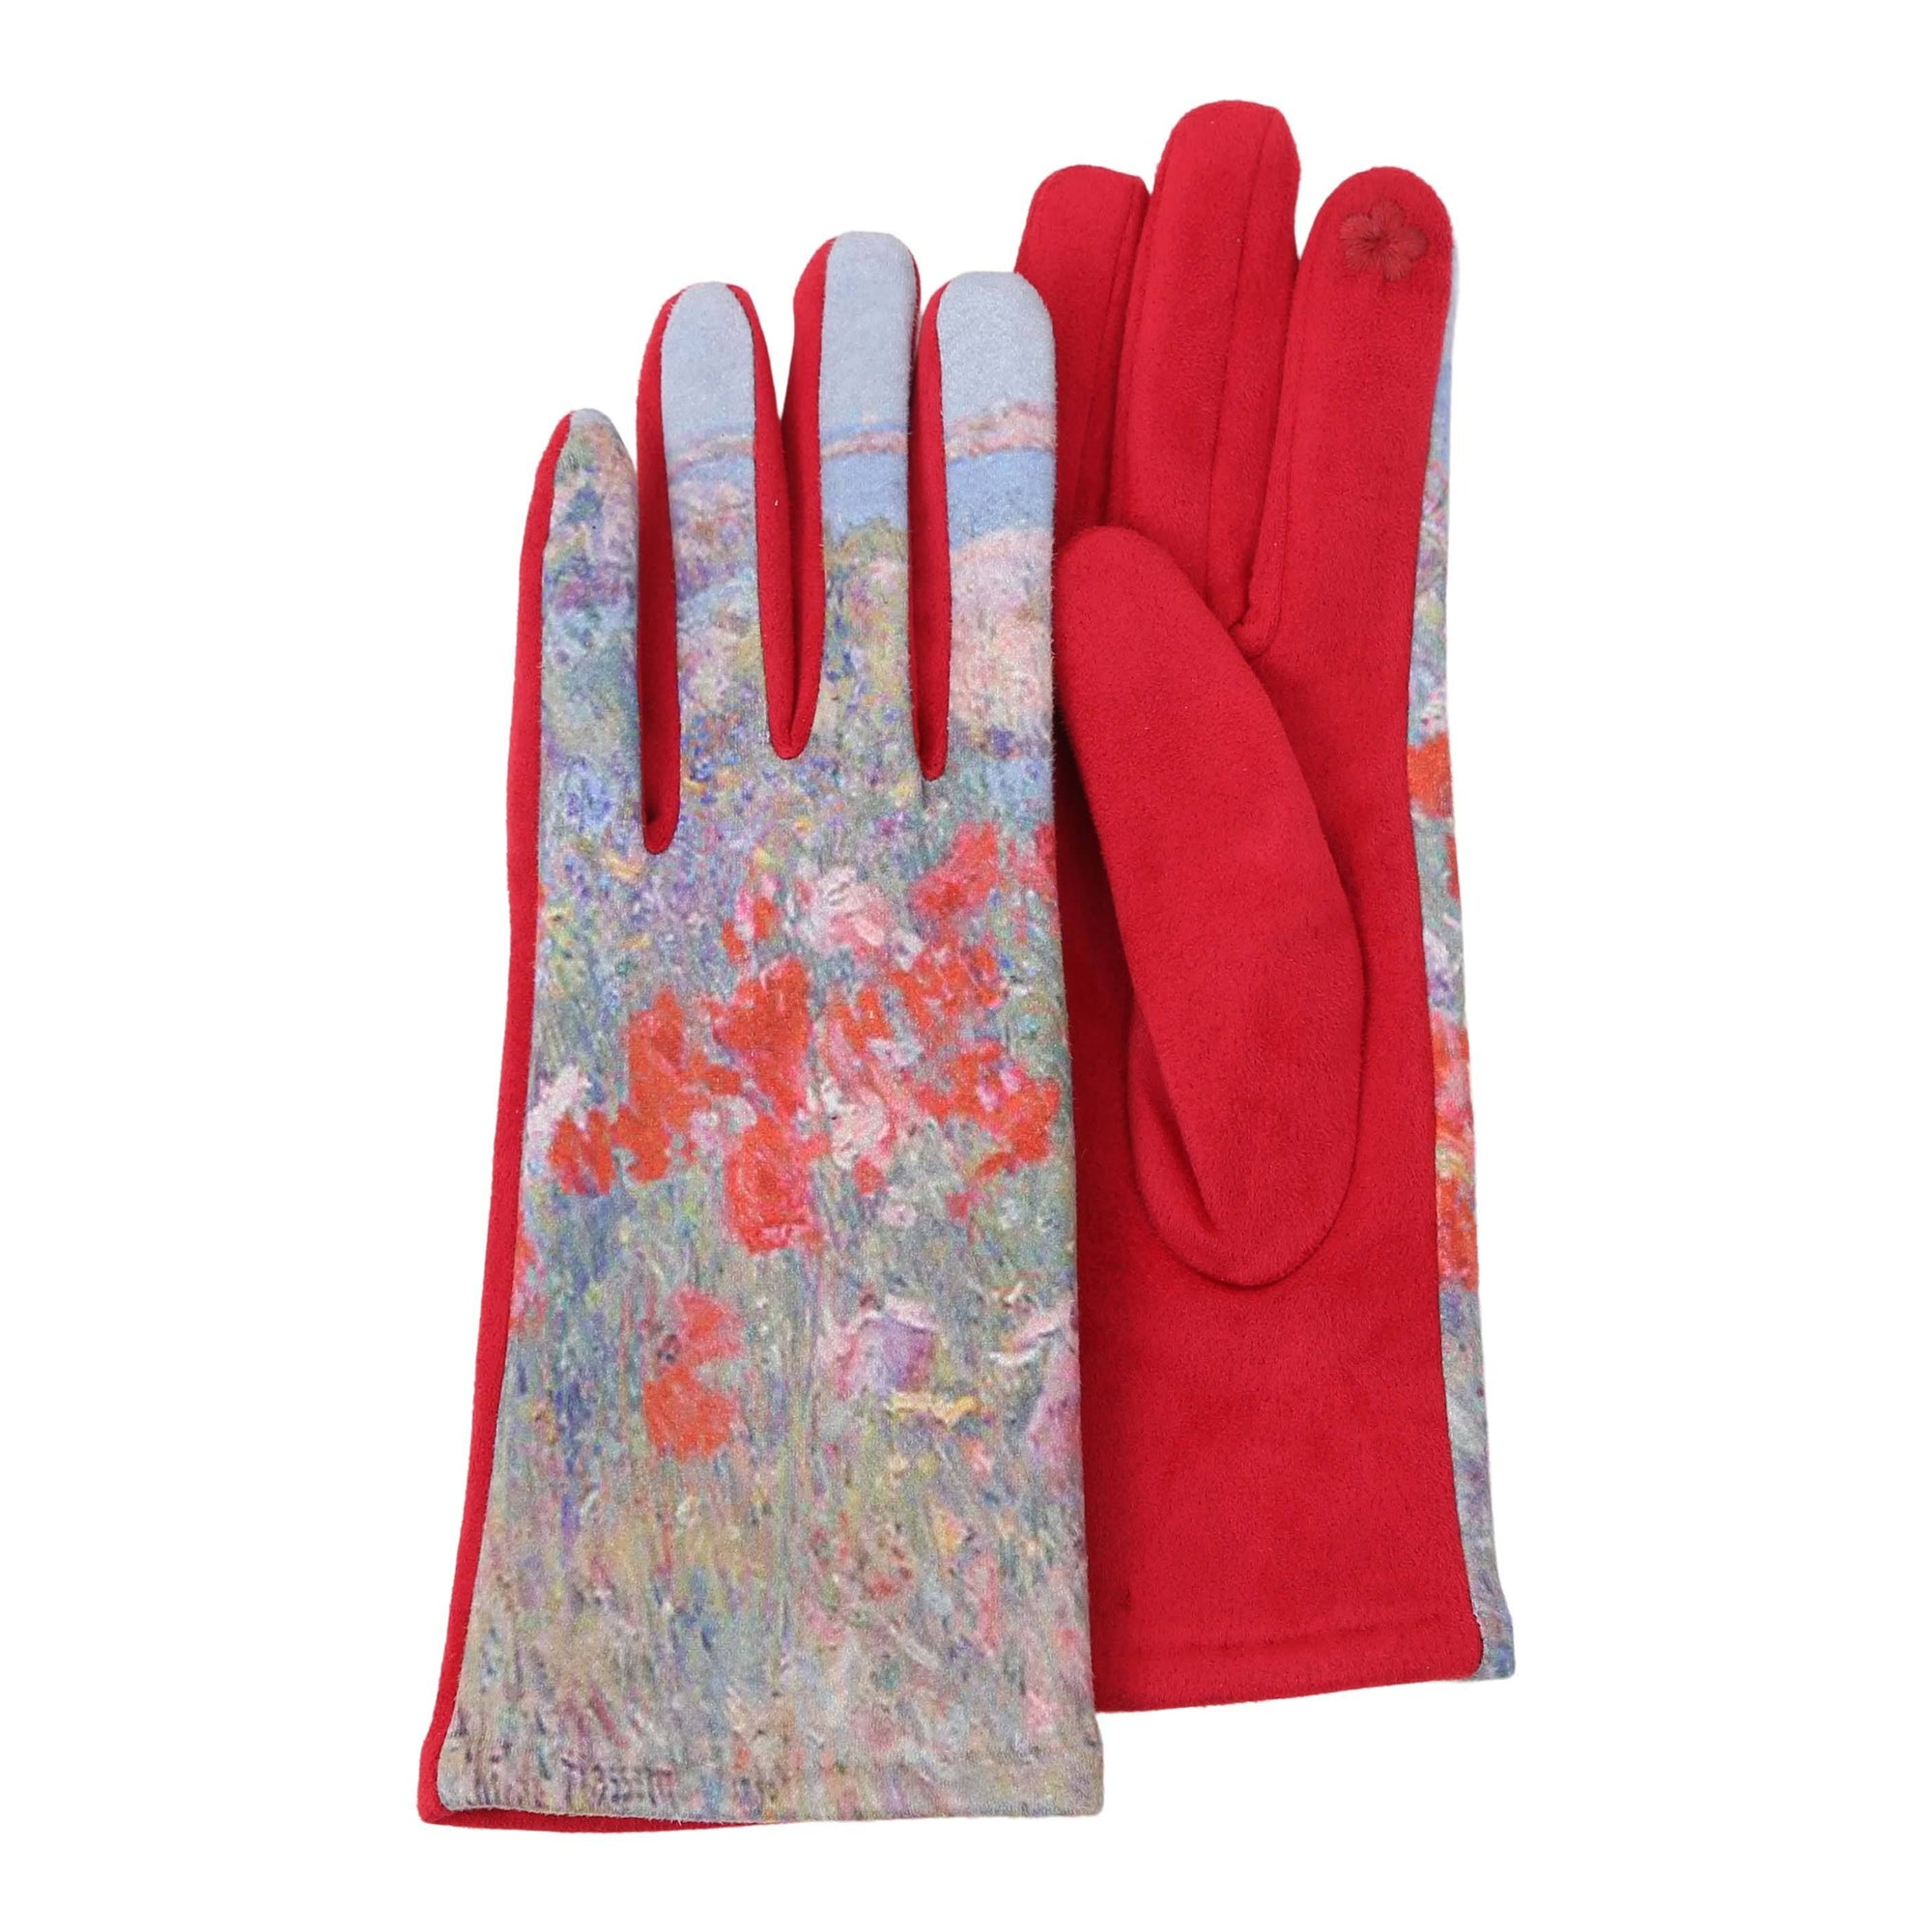 Pair of red and multi-color Hassam Celia's Garden, Isles of Shoals, Maine print  texting gloves.